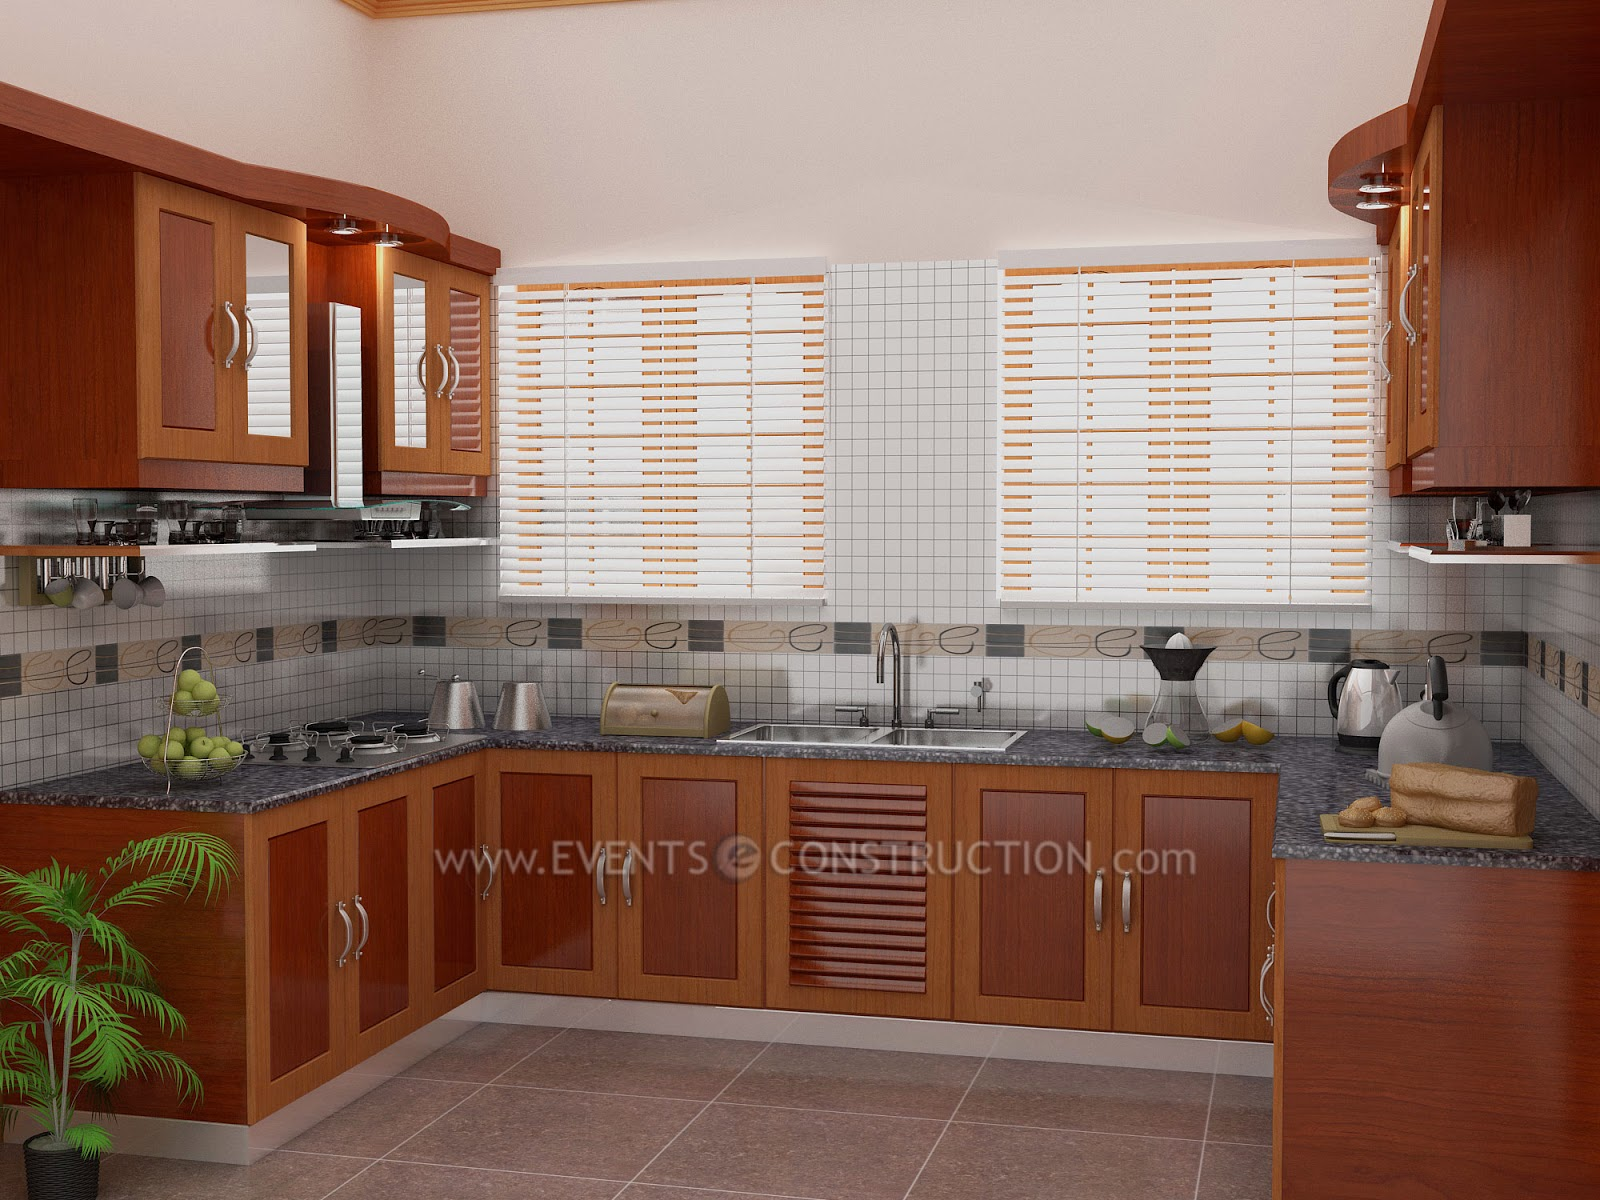 Evens construction pvt ltd simple kerala kitchen design for Latest interior design for kitchen